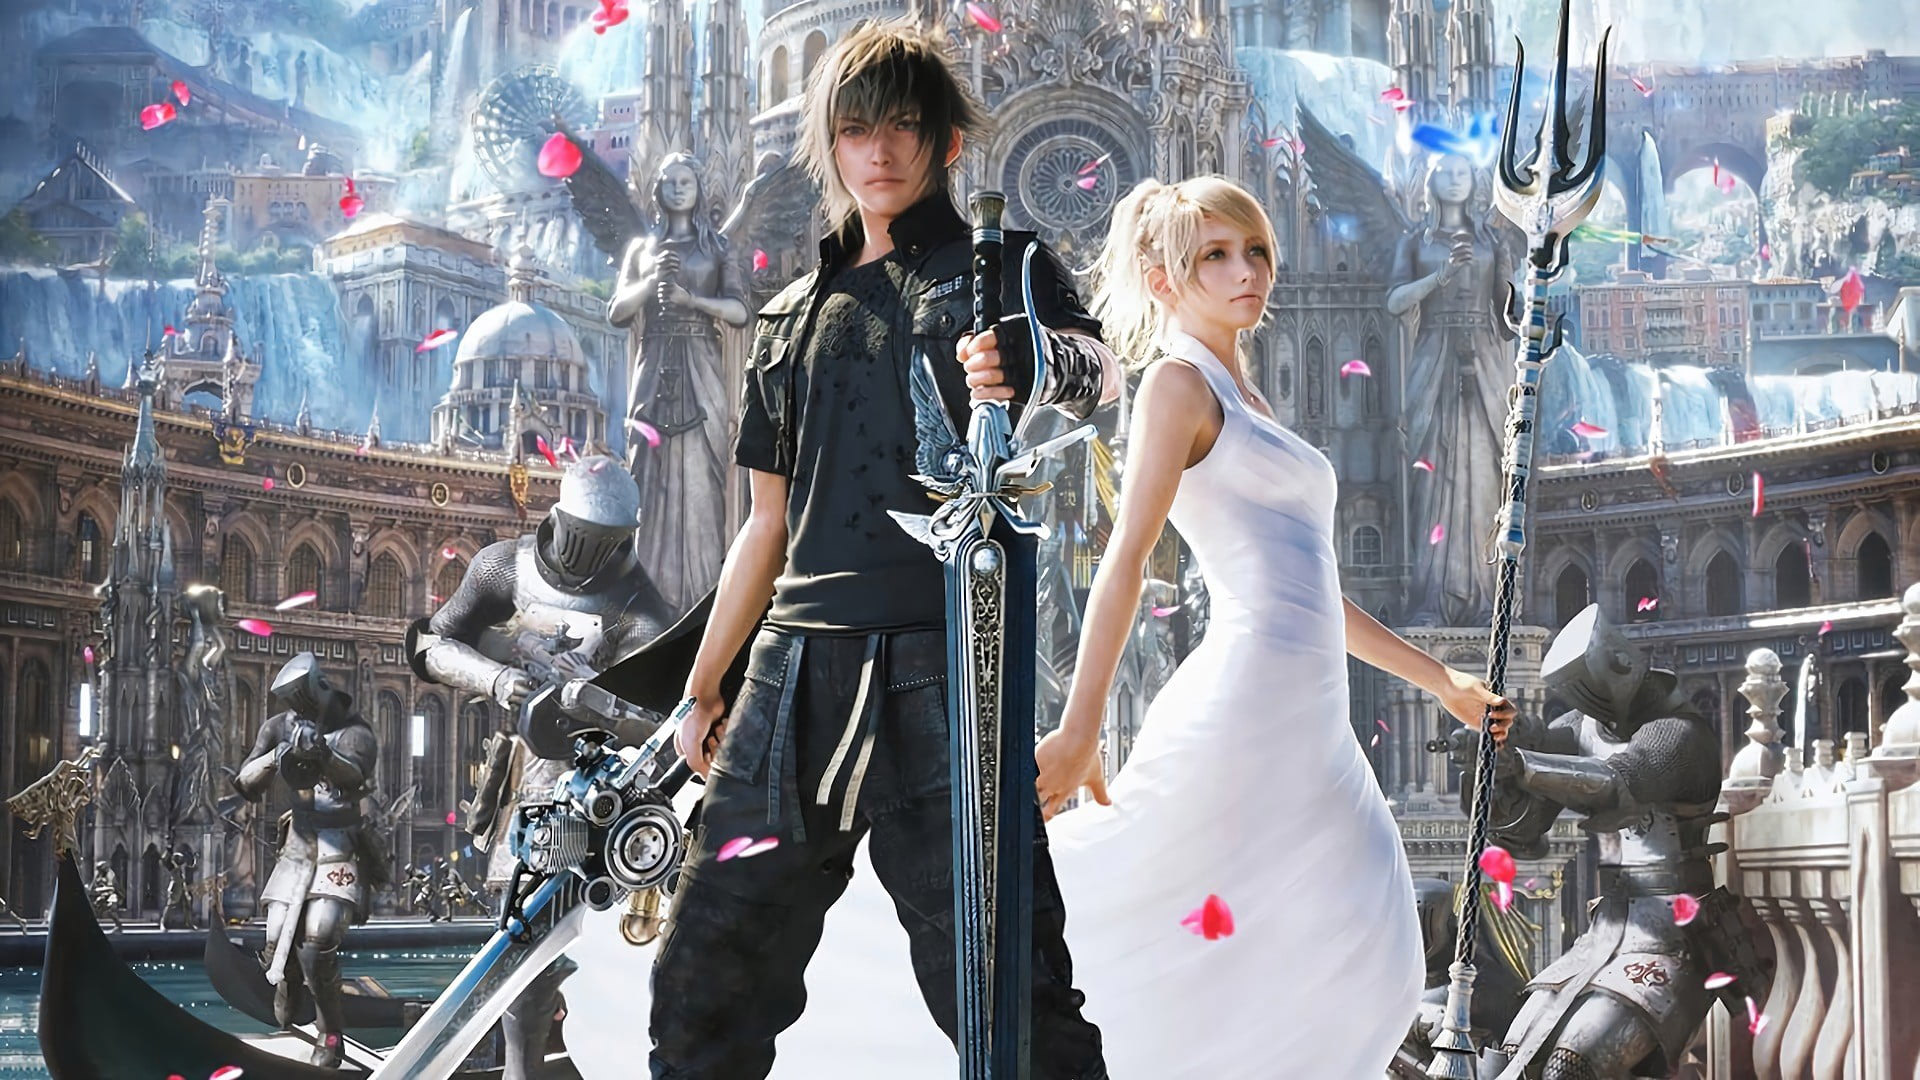 Free Final Fantasy XV Wallpaper in 1920x1080